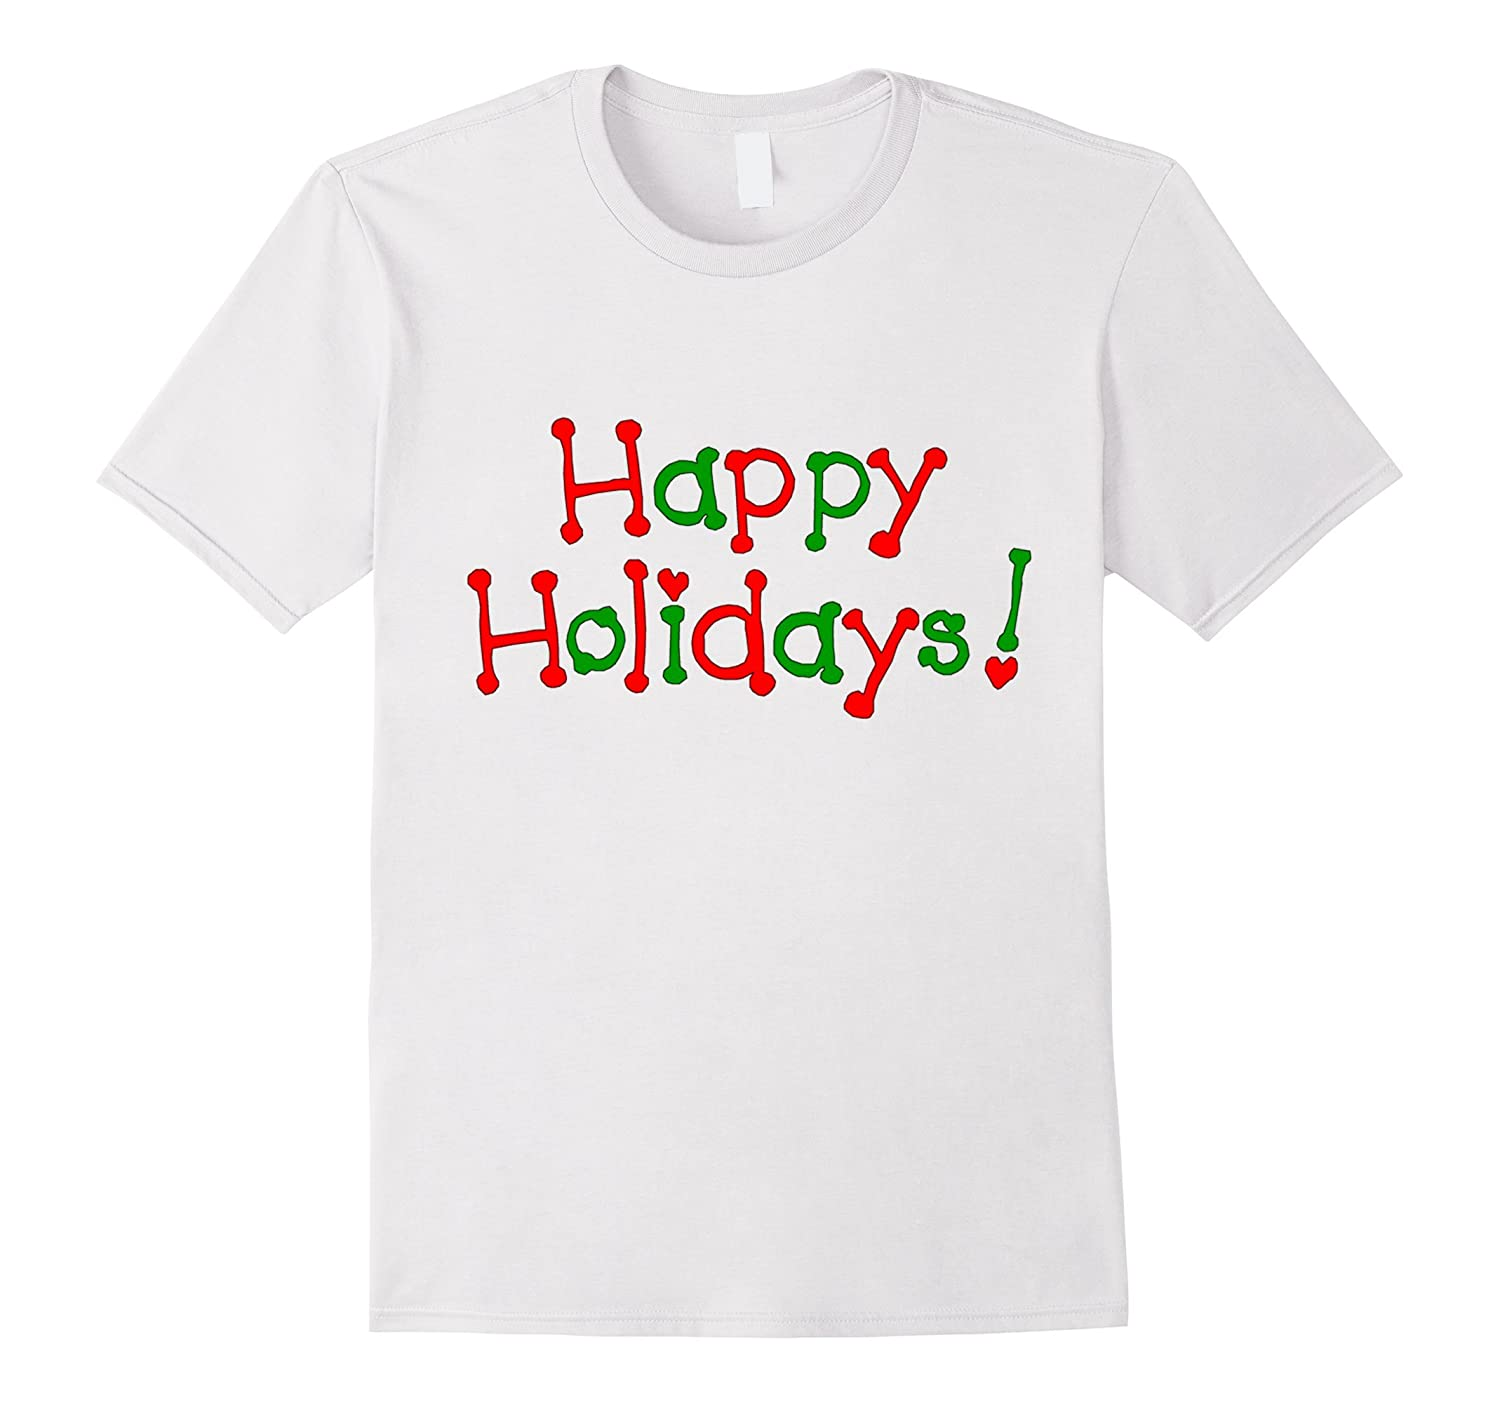 Happy Holidays - Enjoy It With Your Loved Ones Tshirt-Vaci